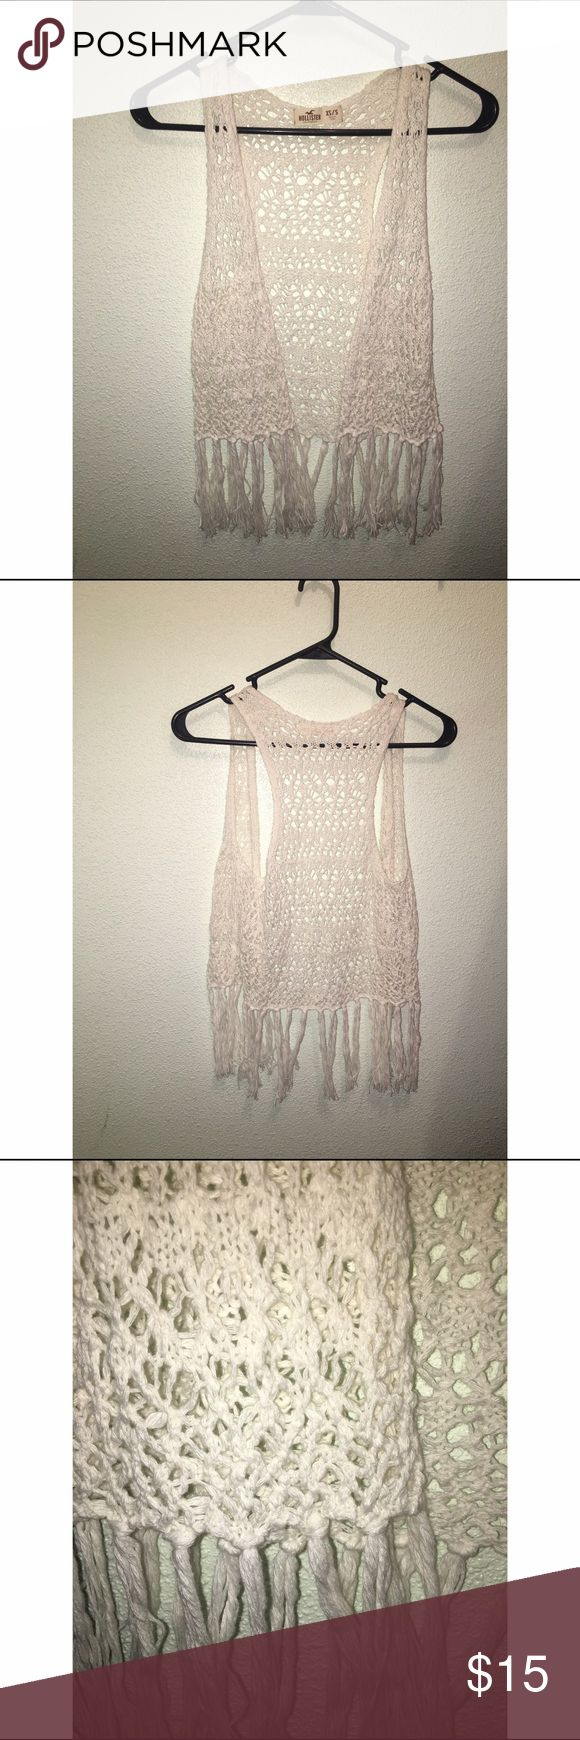 Hollister Sleeveless fringe •Hollister! Looks cute over anything! XS/S •Condition: great condition! SALE is FINAL  •Please feel free to make offers! ✅  •NO ❌🅿️🅿️or Ⓜ️erc❌ •I am able to model (almost all of) items I have posted! If I haven't already- just ask 😊  •Measurements & more pictures available upon request!  •FREE GIFT INCLUDED 🎁 Hollister Sweaters Shrugs & Ponchos